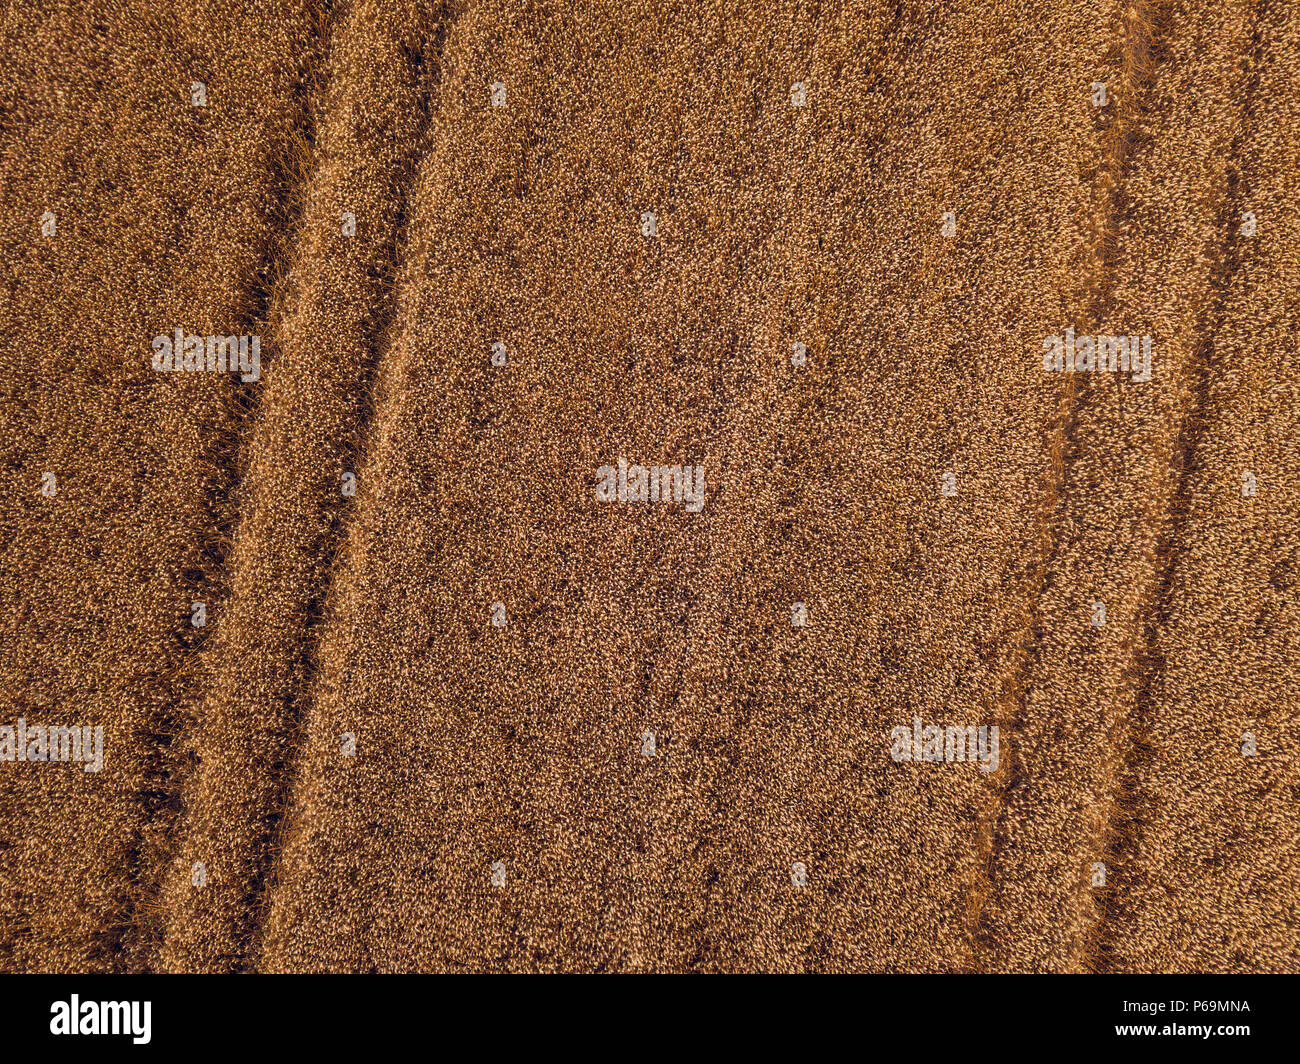 Aerial top view of ripe wheat field from drond point of view - Stock Image